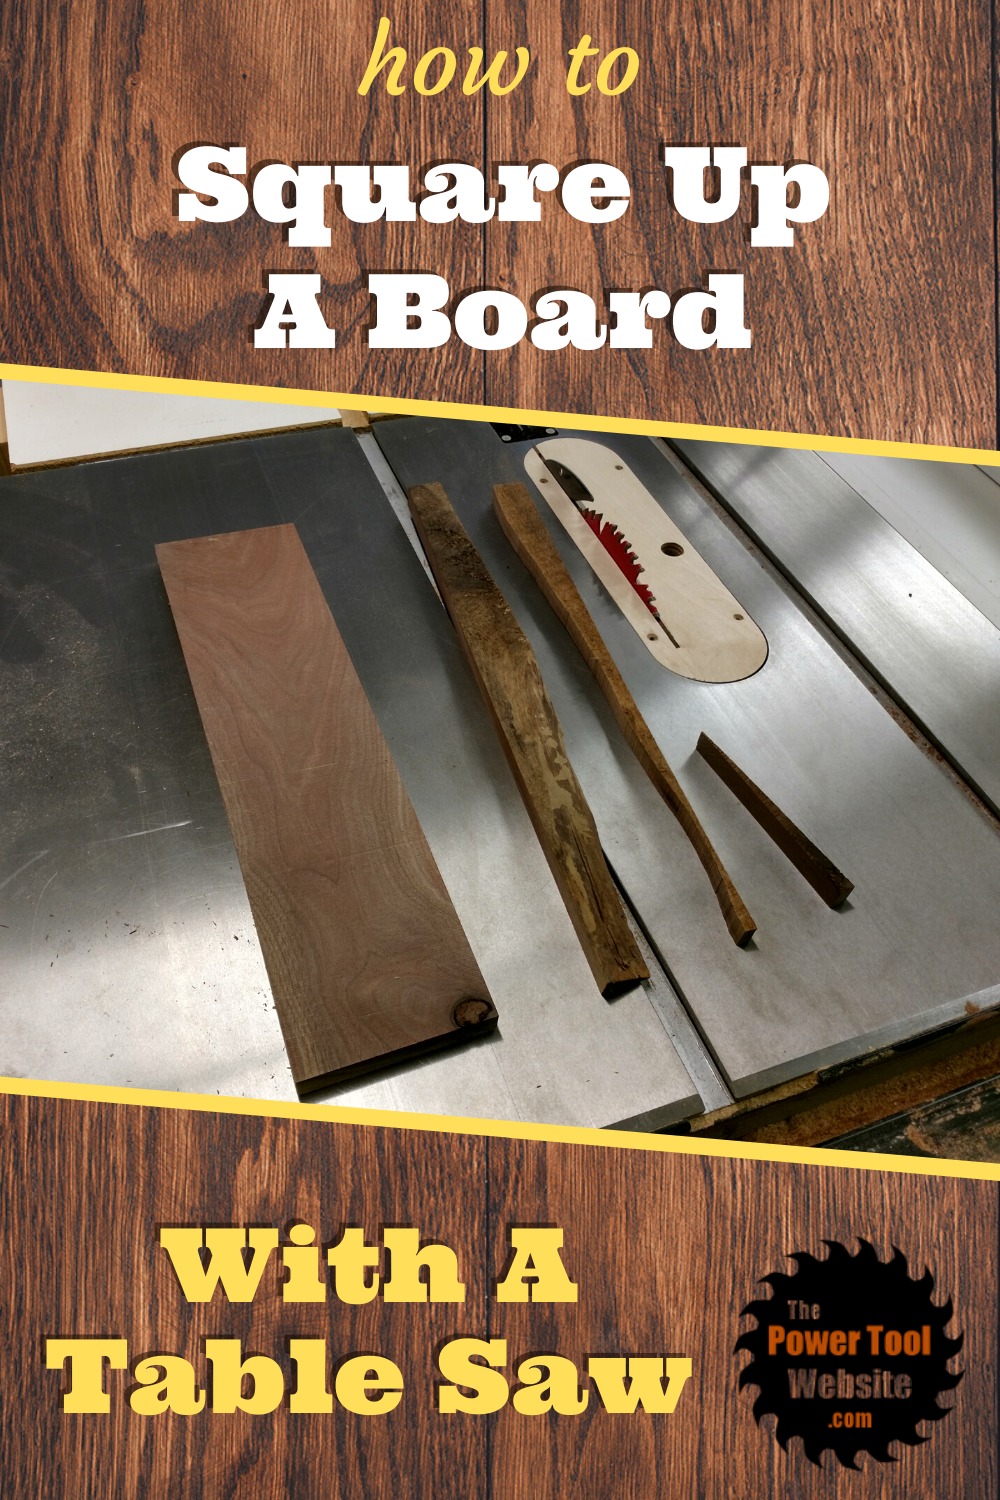 How To Square Up A Board When You Only Have A Table Saw